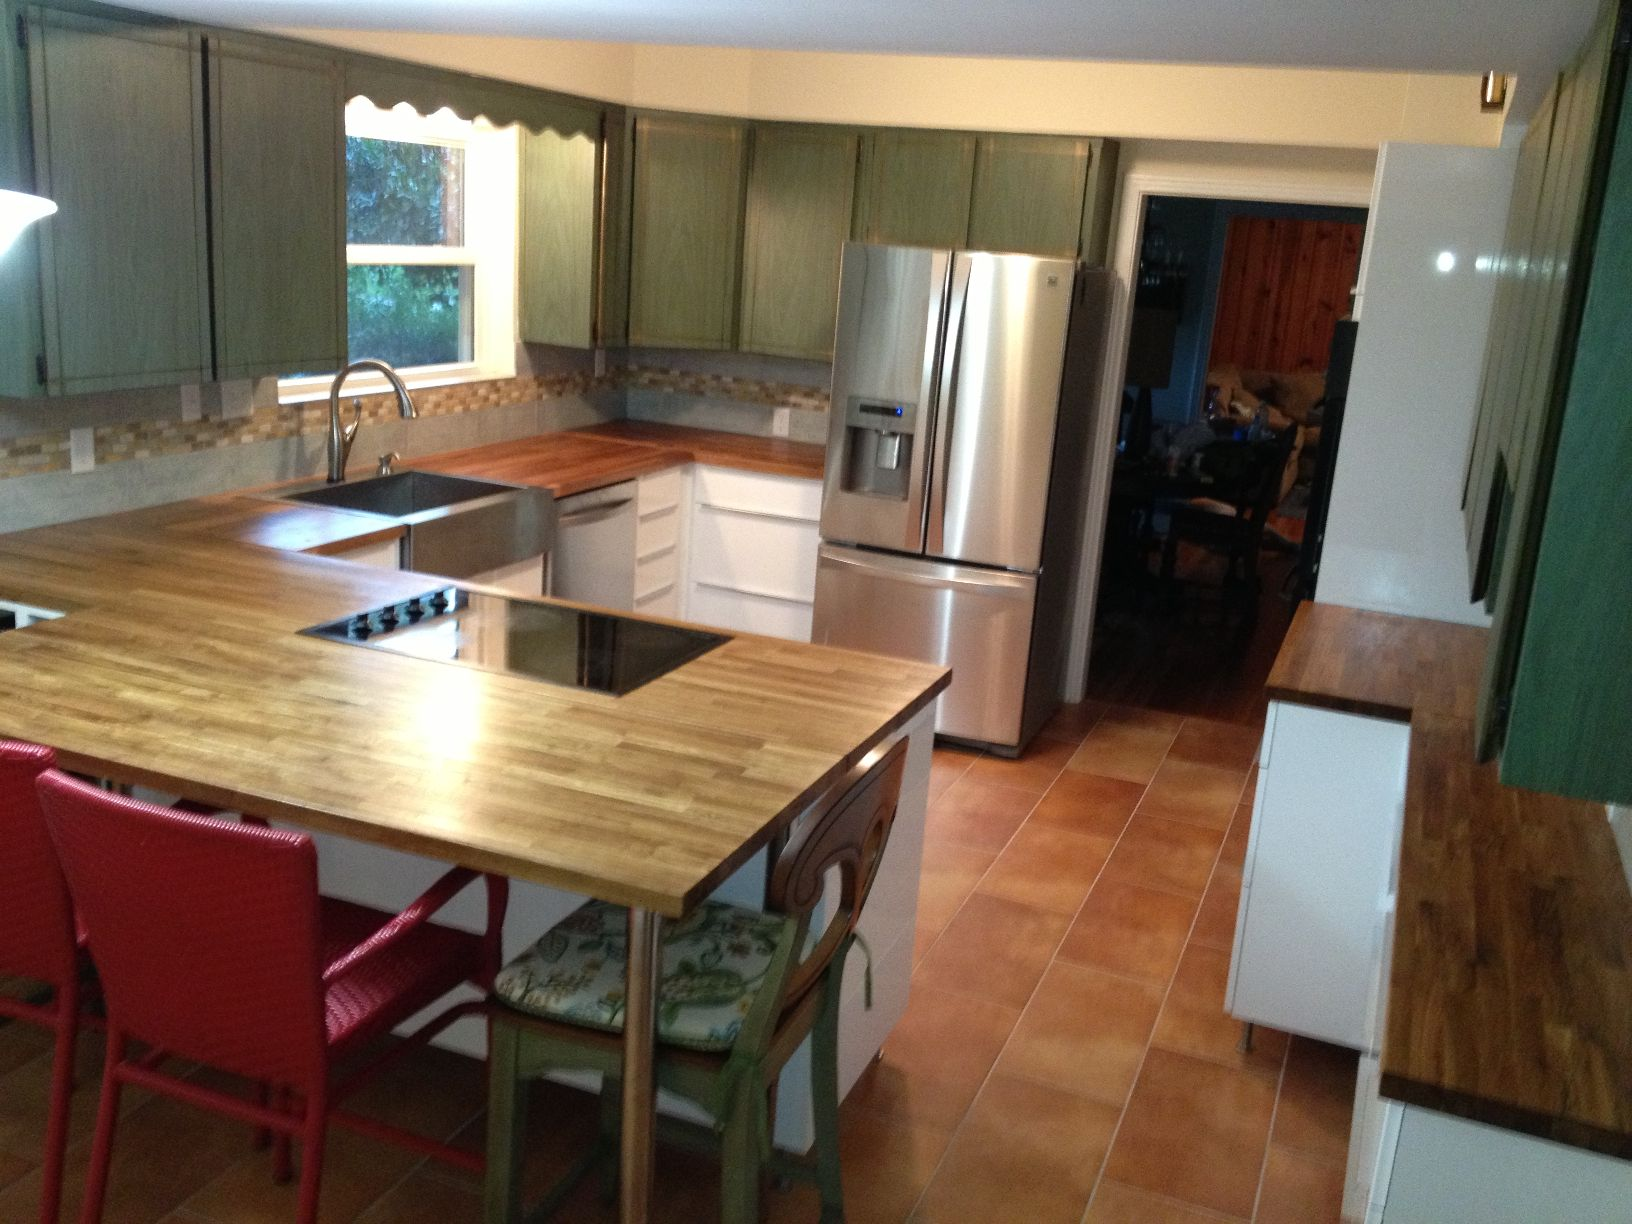 edward-julian-countertops-finished-with-odie's-01-1.jpg